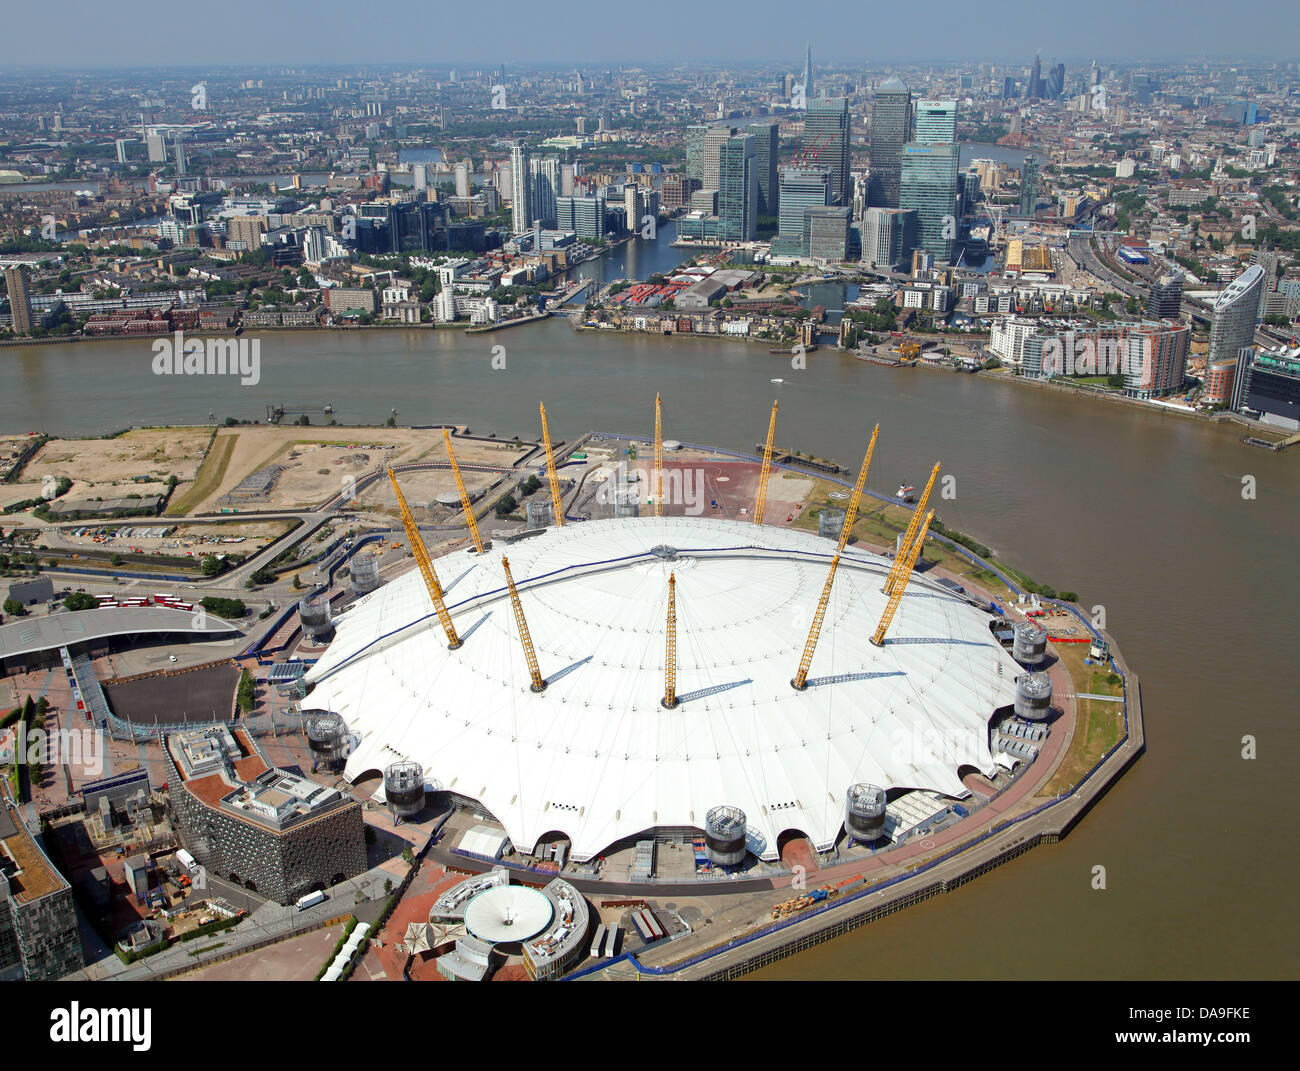 aerial view of the O2 Arena, Millennium Dome, London with Canary Wharf in the background - Stock Image